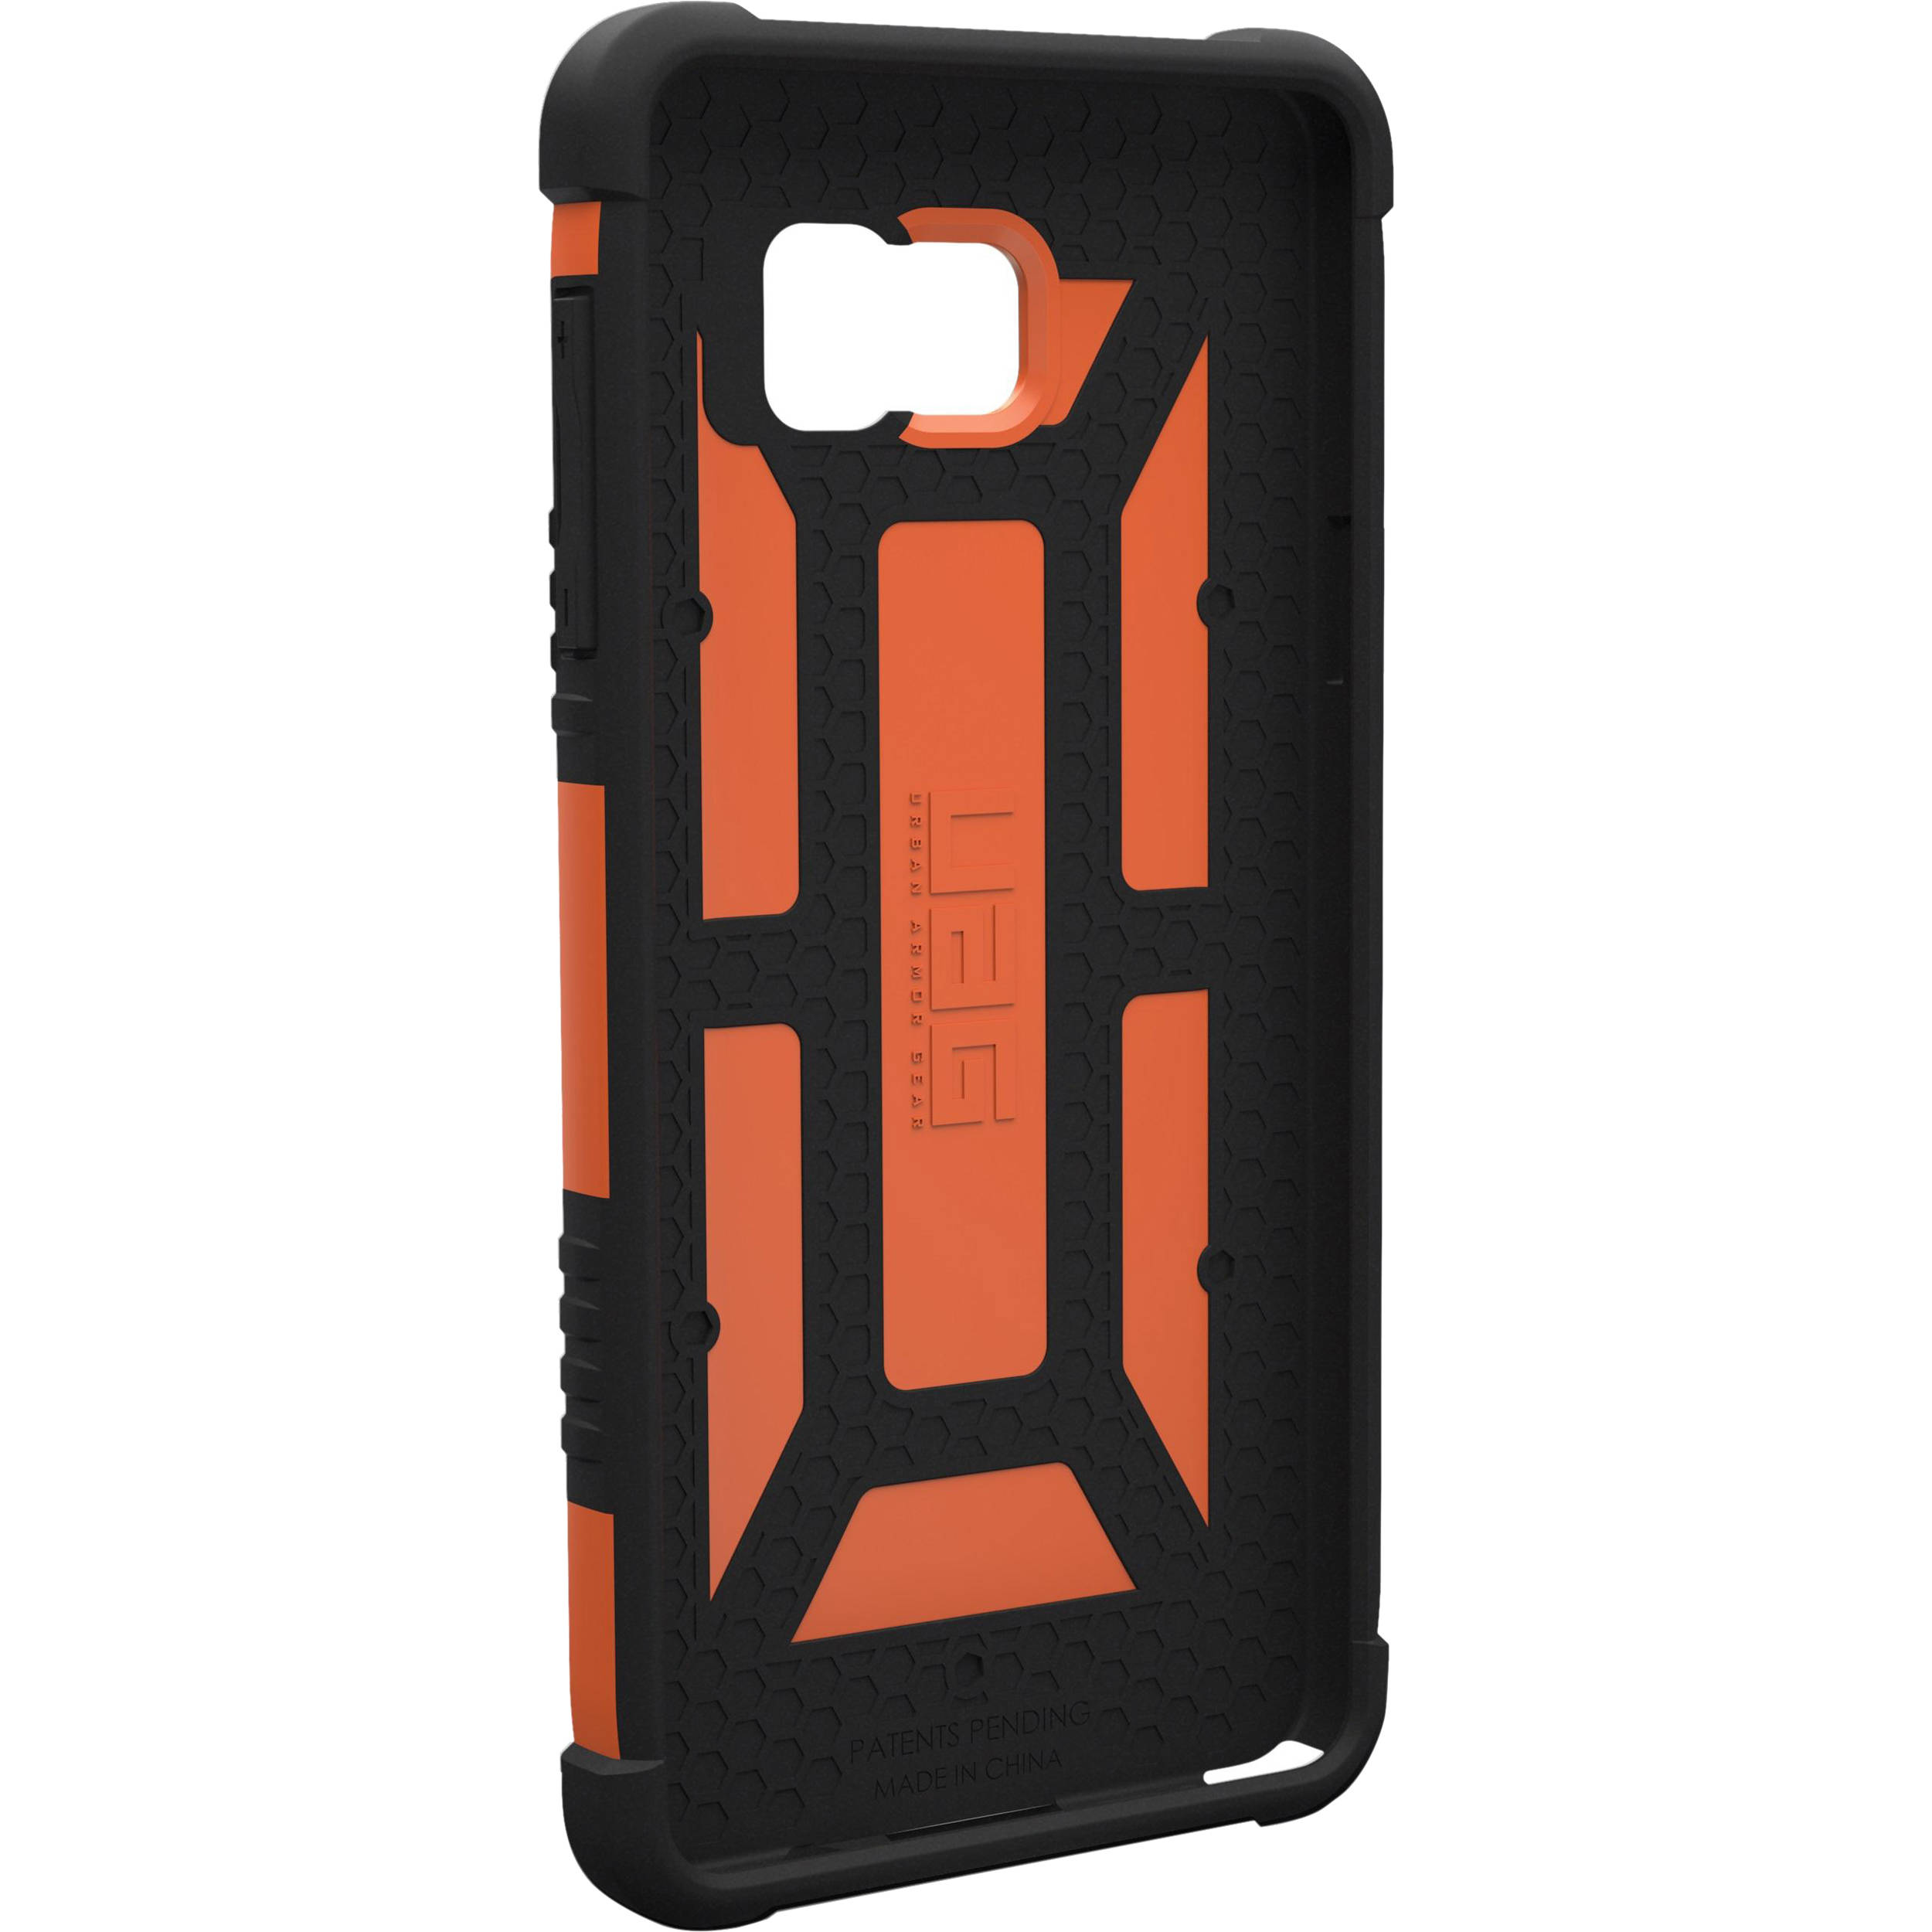 premium selection 9fed3 1b850 Urban Armor Gear Composite Case for Galaxy Note 5 UAG-GLXN5-RST